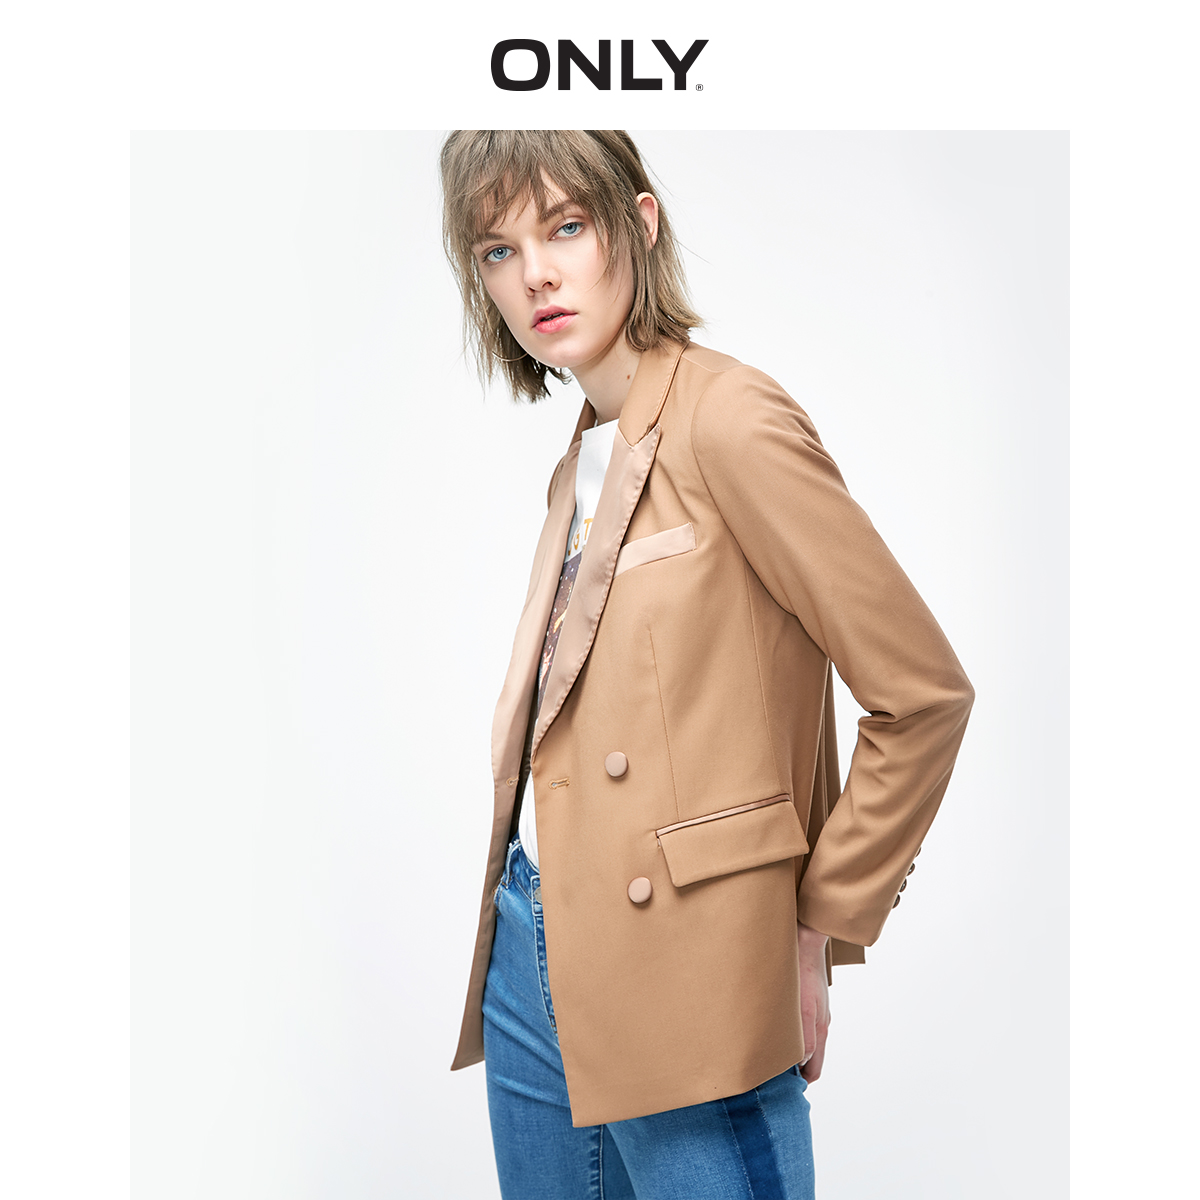 ONLY  Women's Loose Fit Double-breasted Blazer   119108545